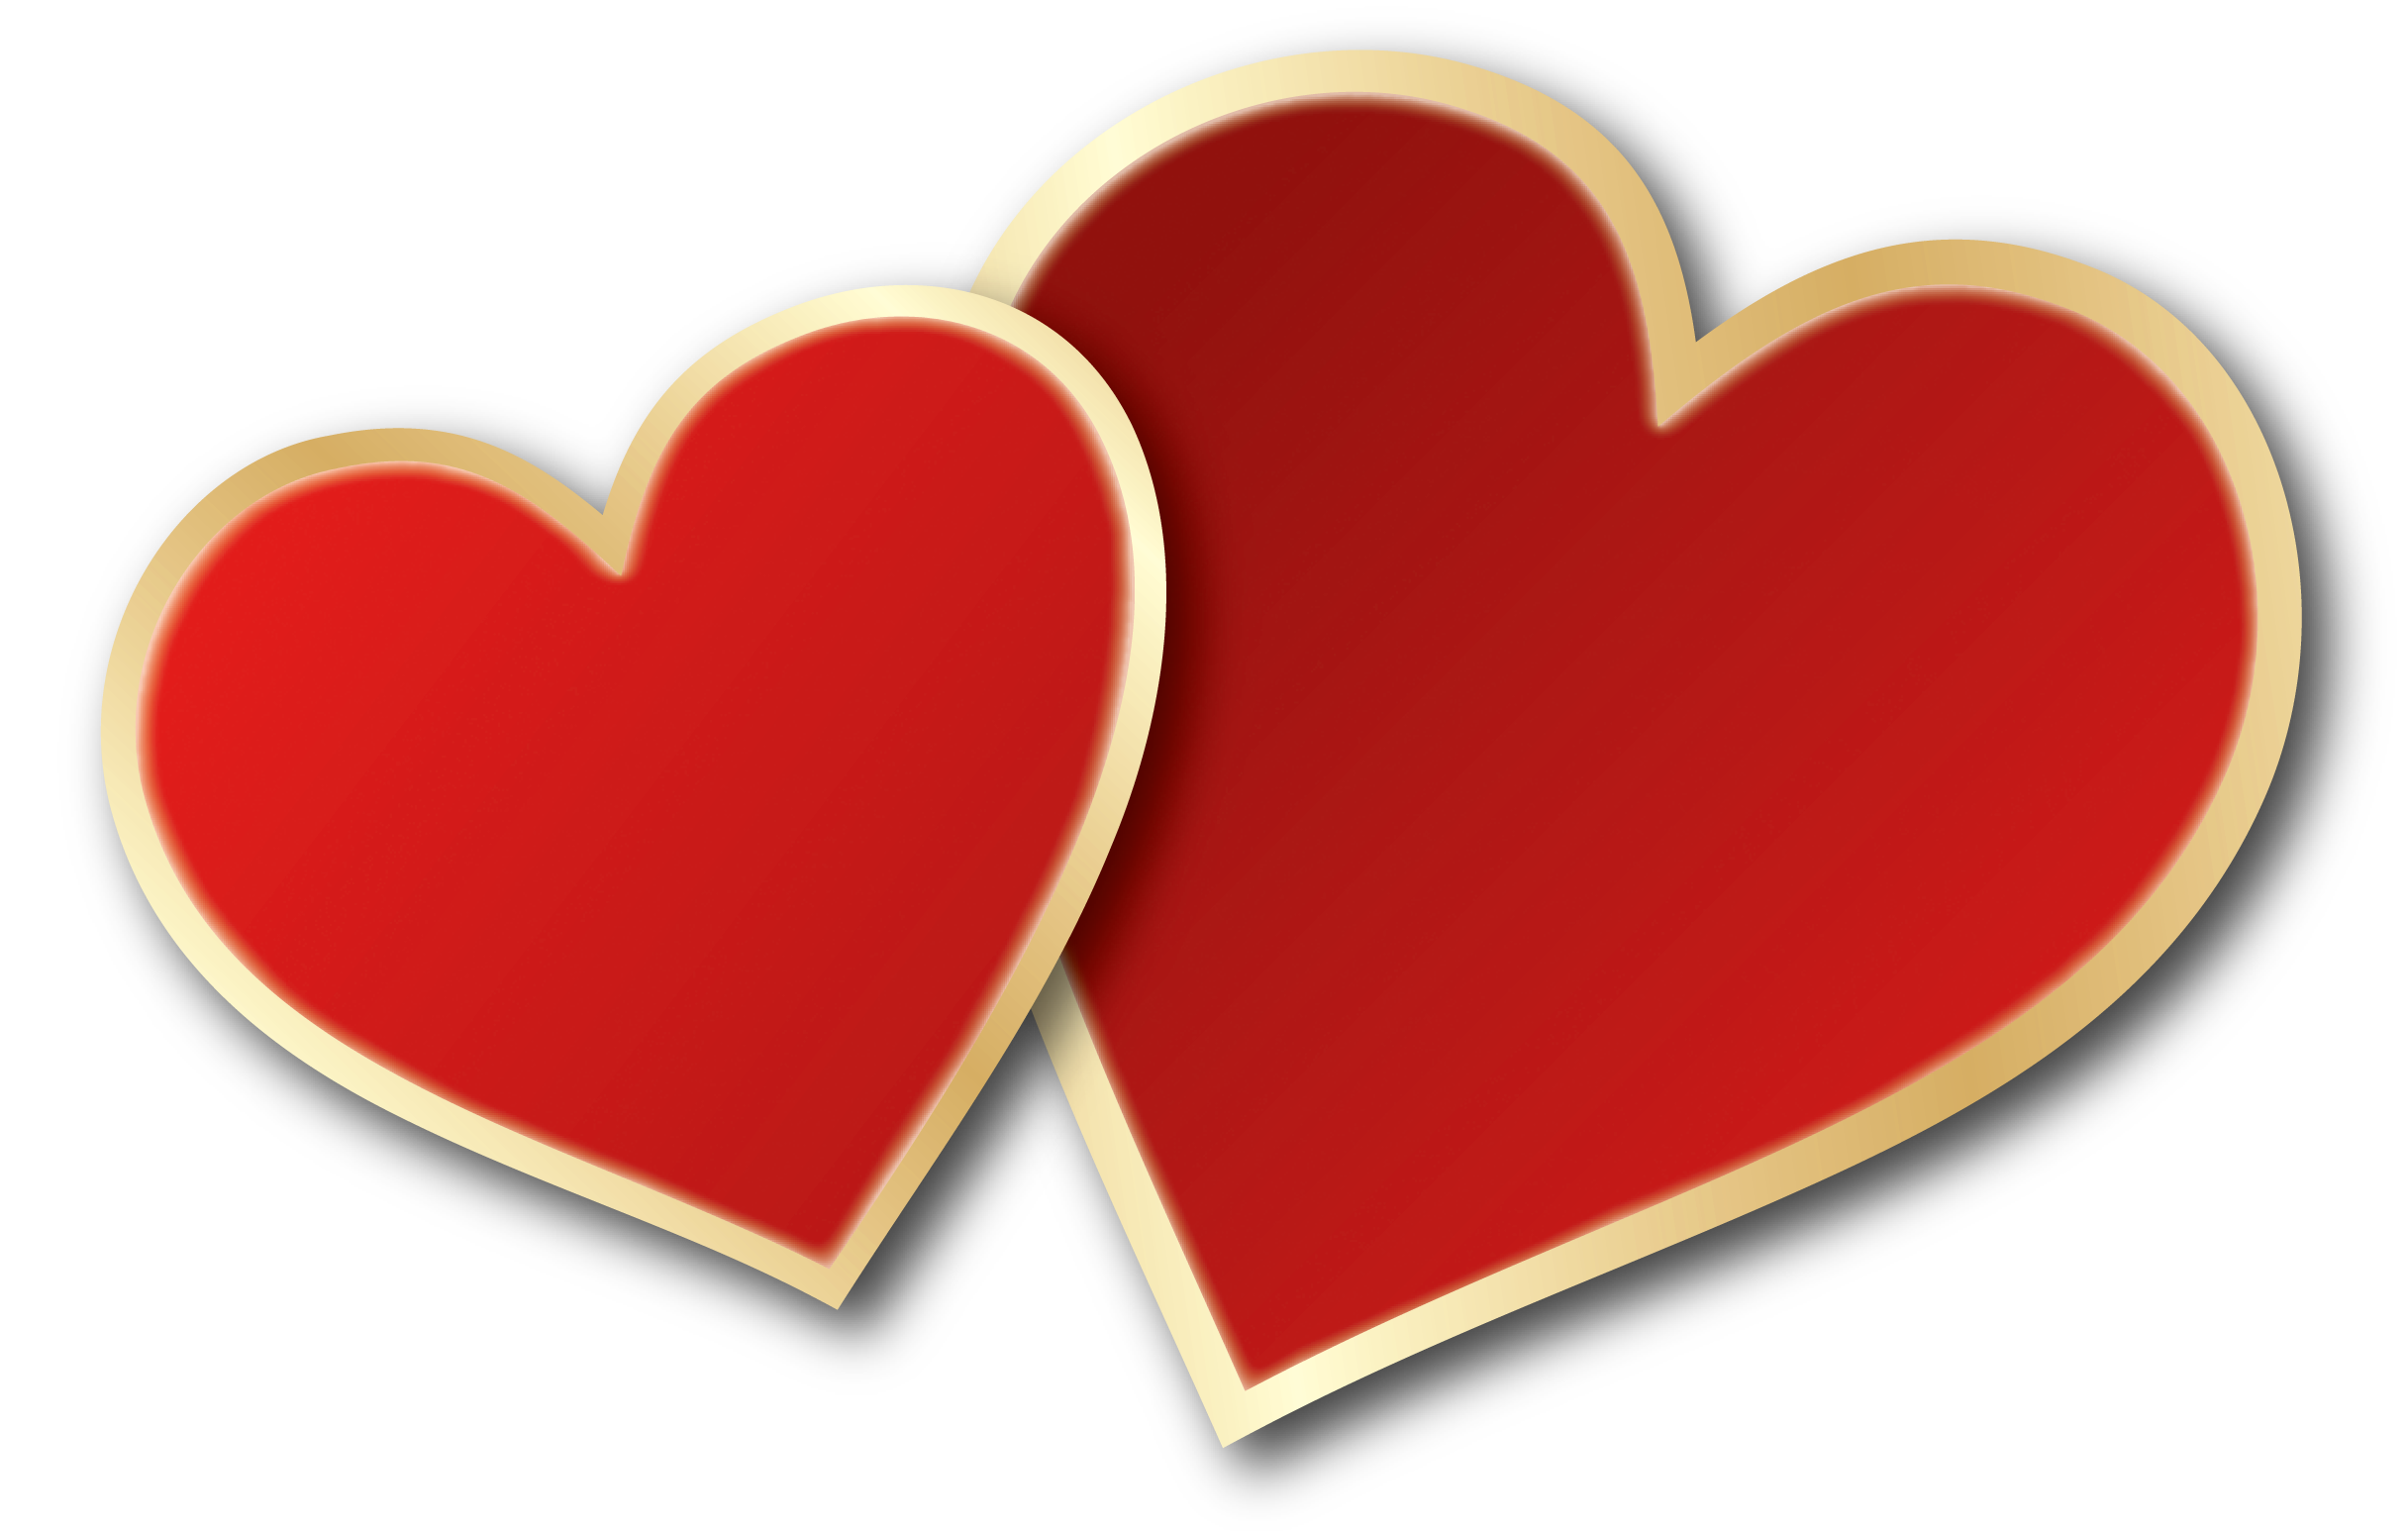 Clipart heart doily. Valentines day hearts at